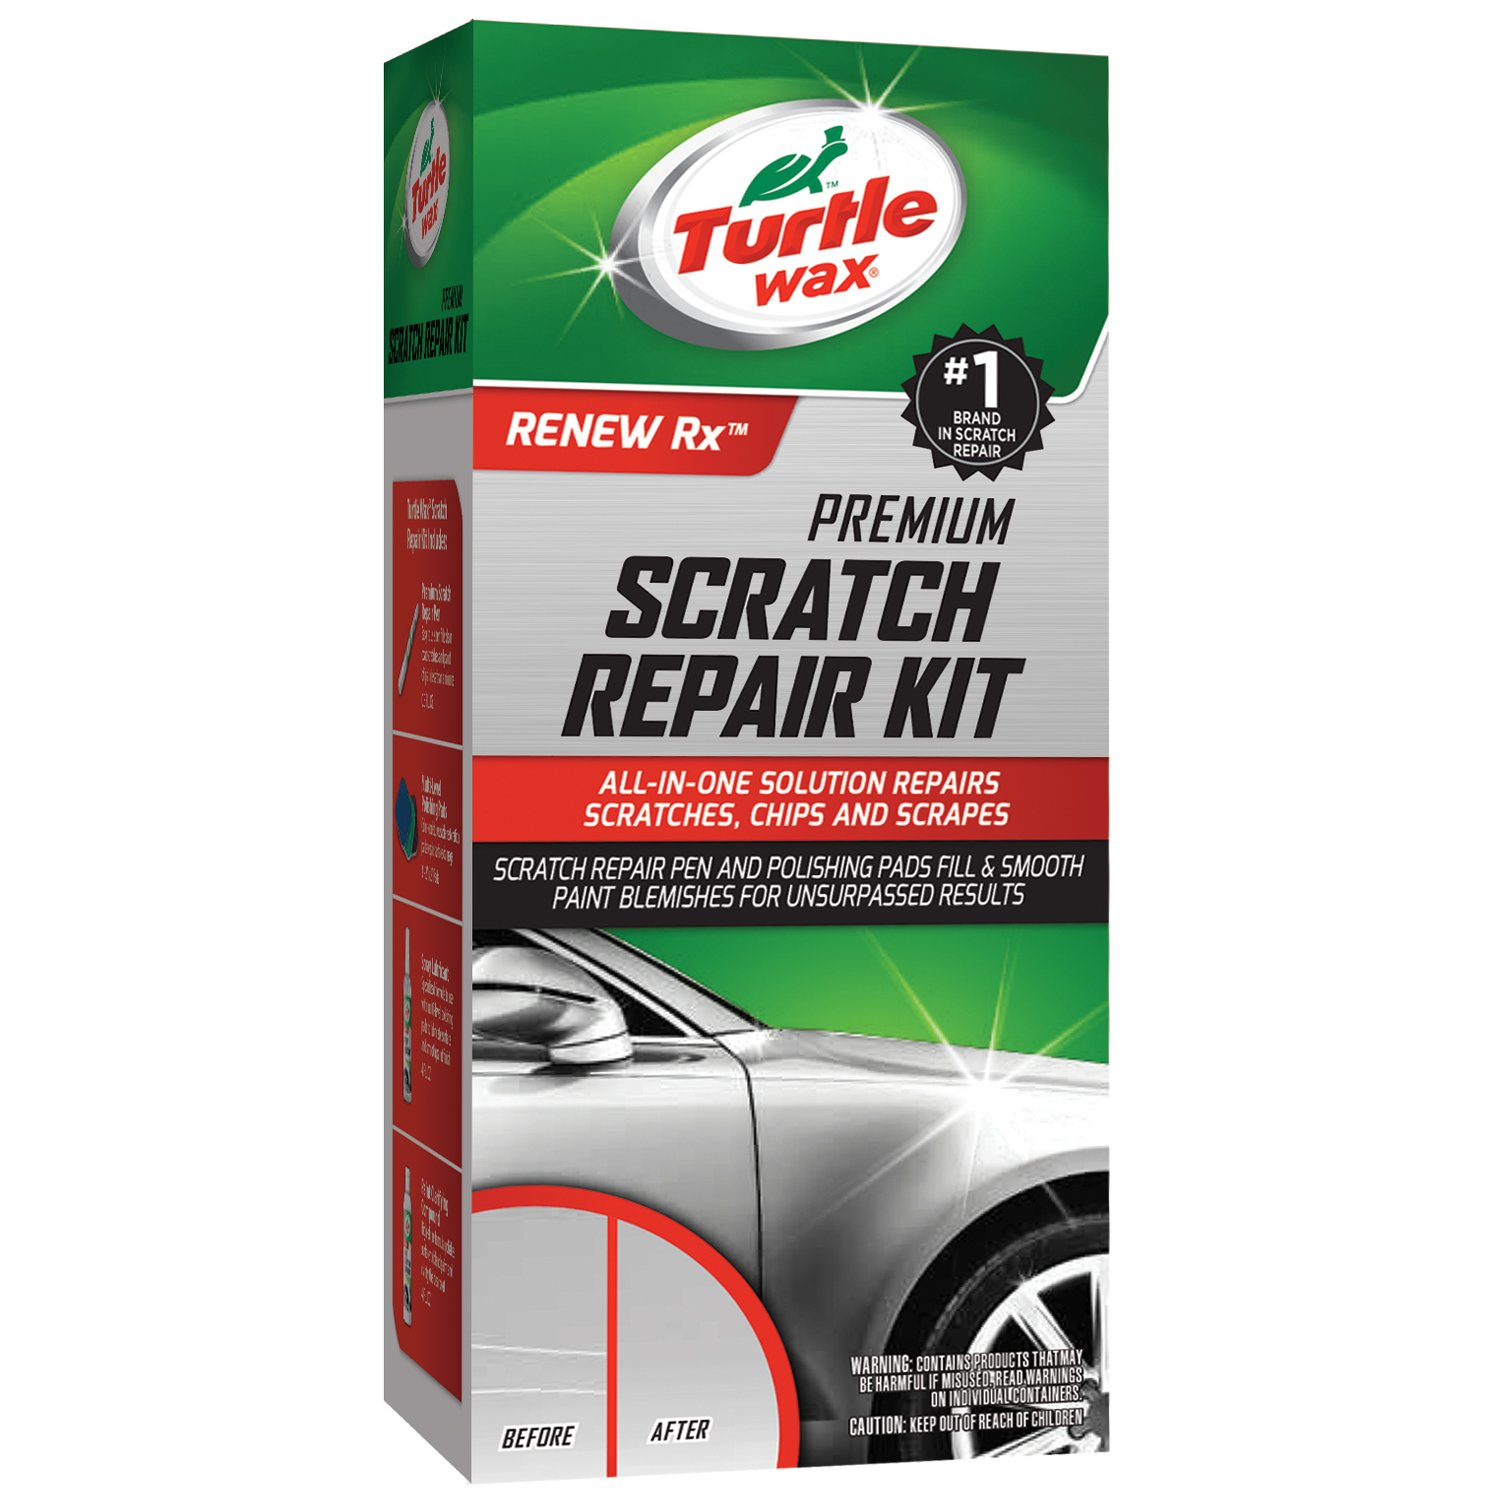 Top 10 Best Scratch Repair Kits For Cars 2018 2019 On